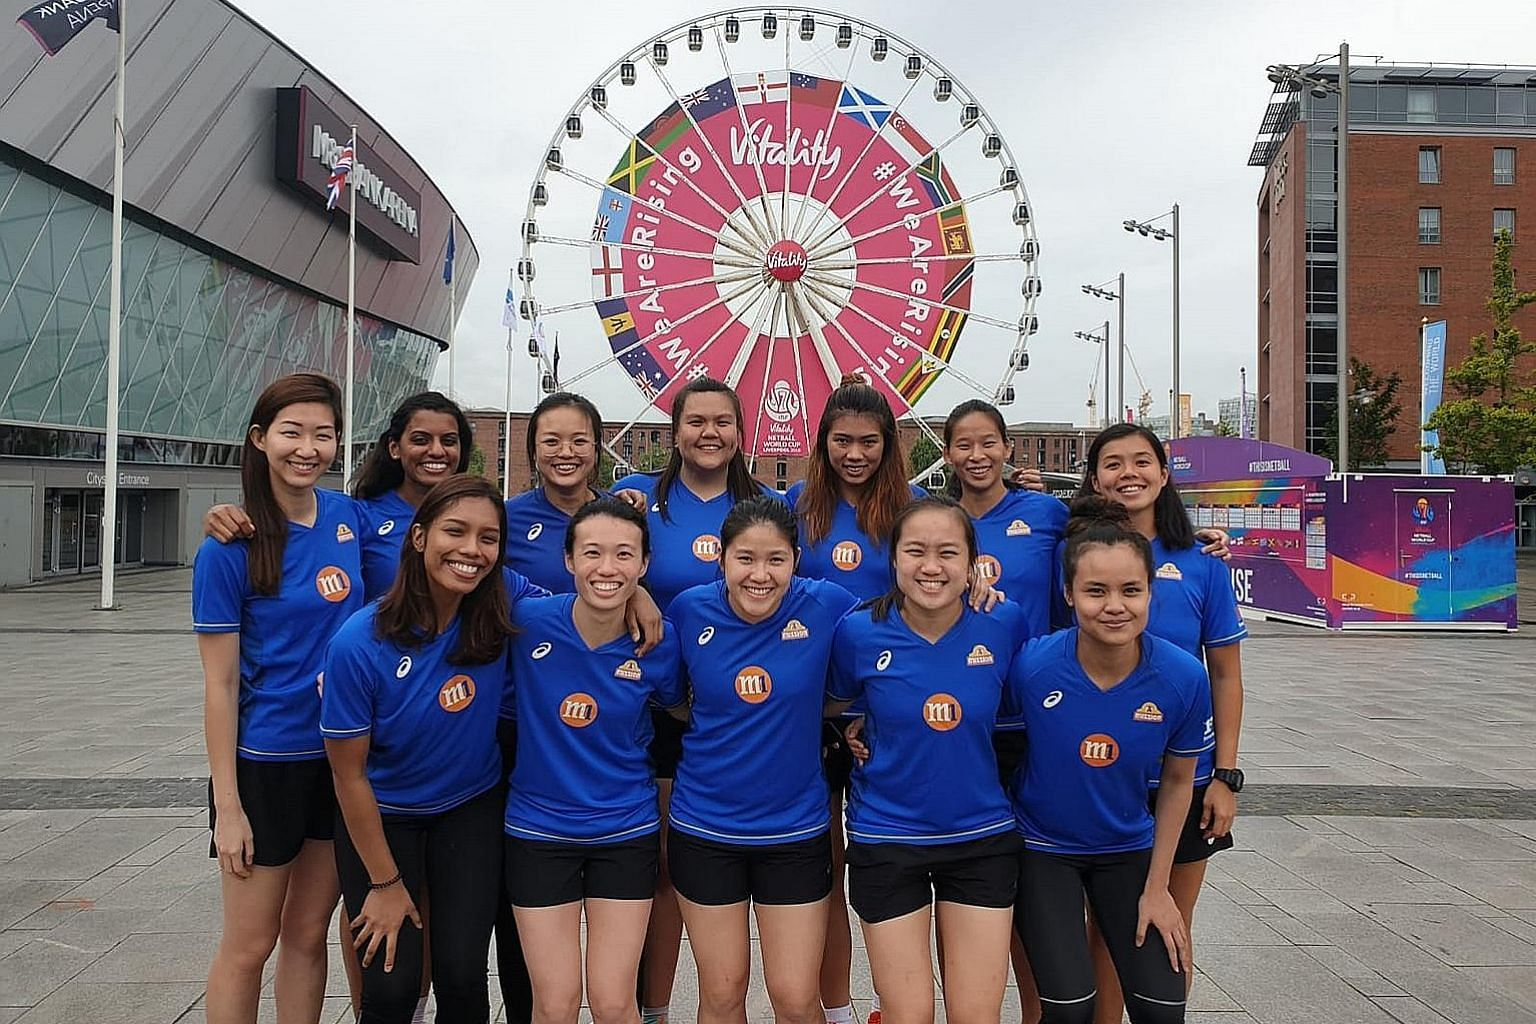 Charmaine Soh (back, left) and Kimberly Lim (front, centre), with teammates outside the Netball World Cup venue M&S Bank Arena in Liverpool, are the only two Singapore players with experience at this level.